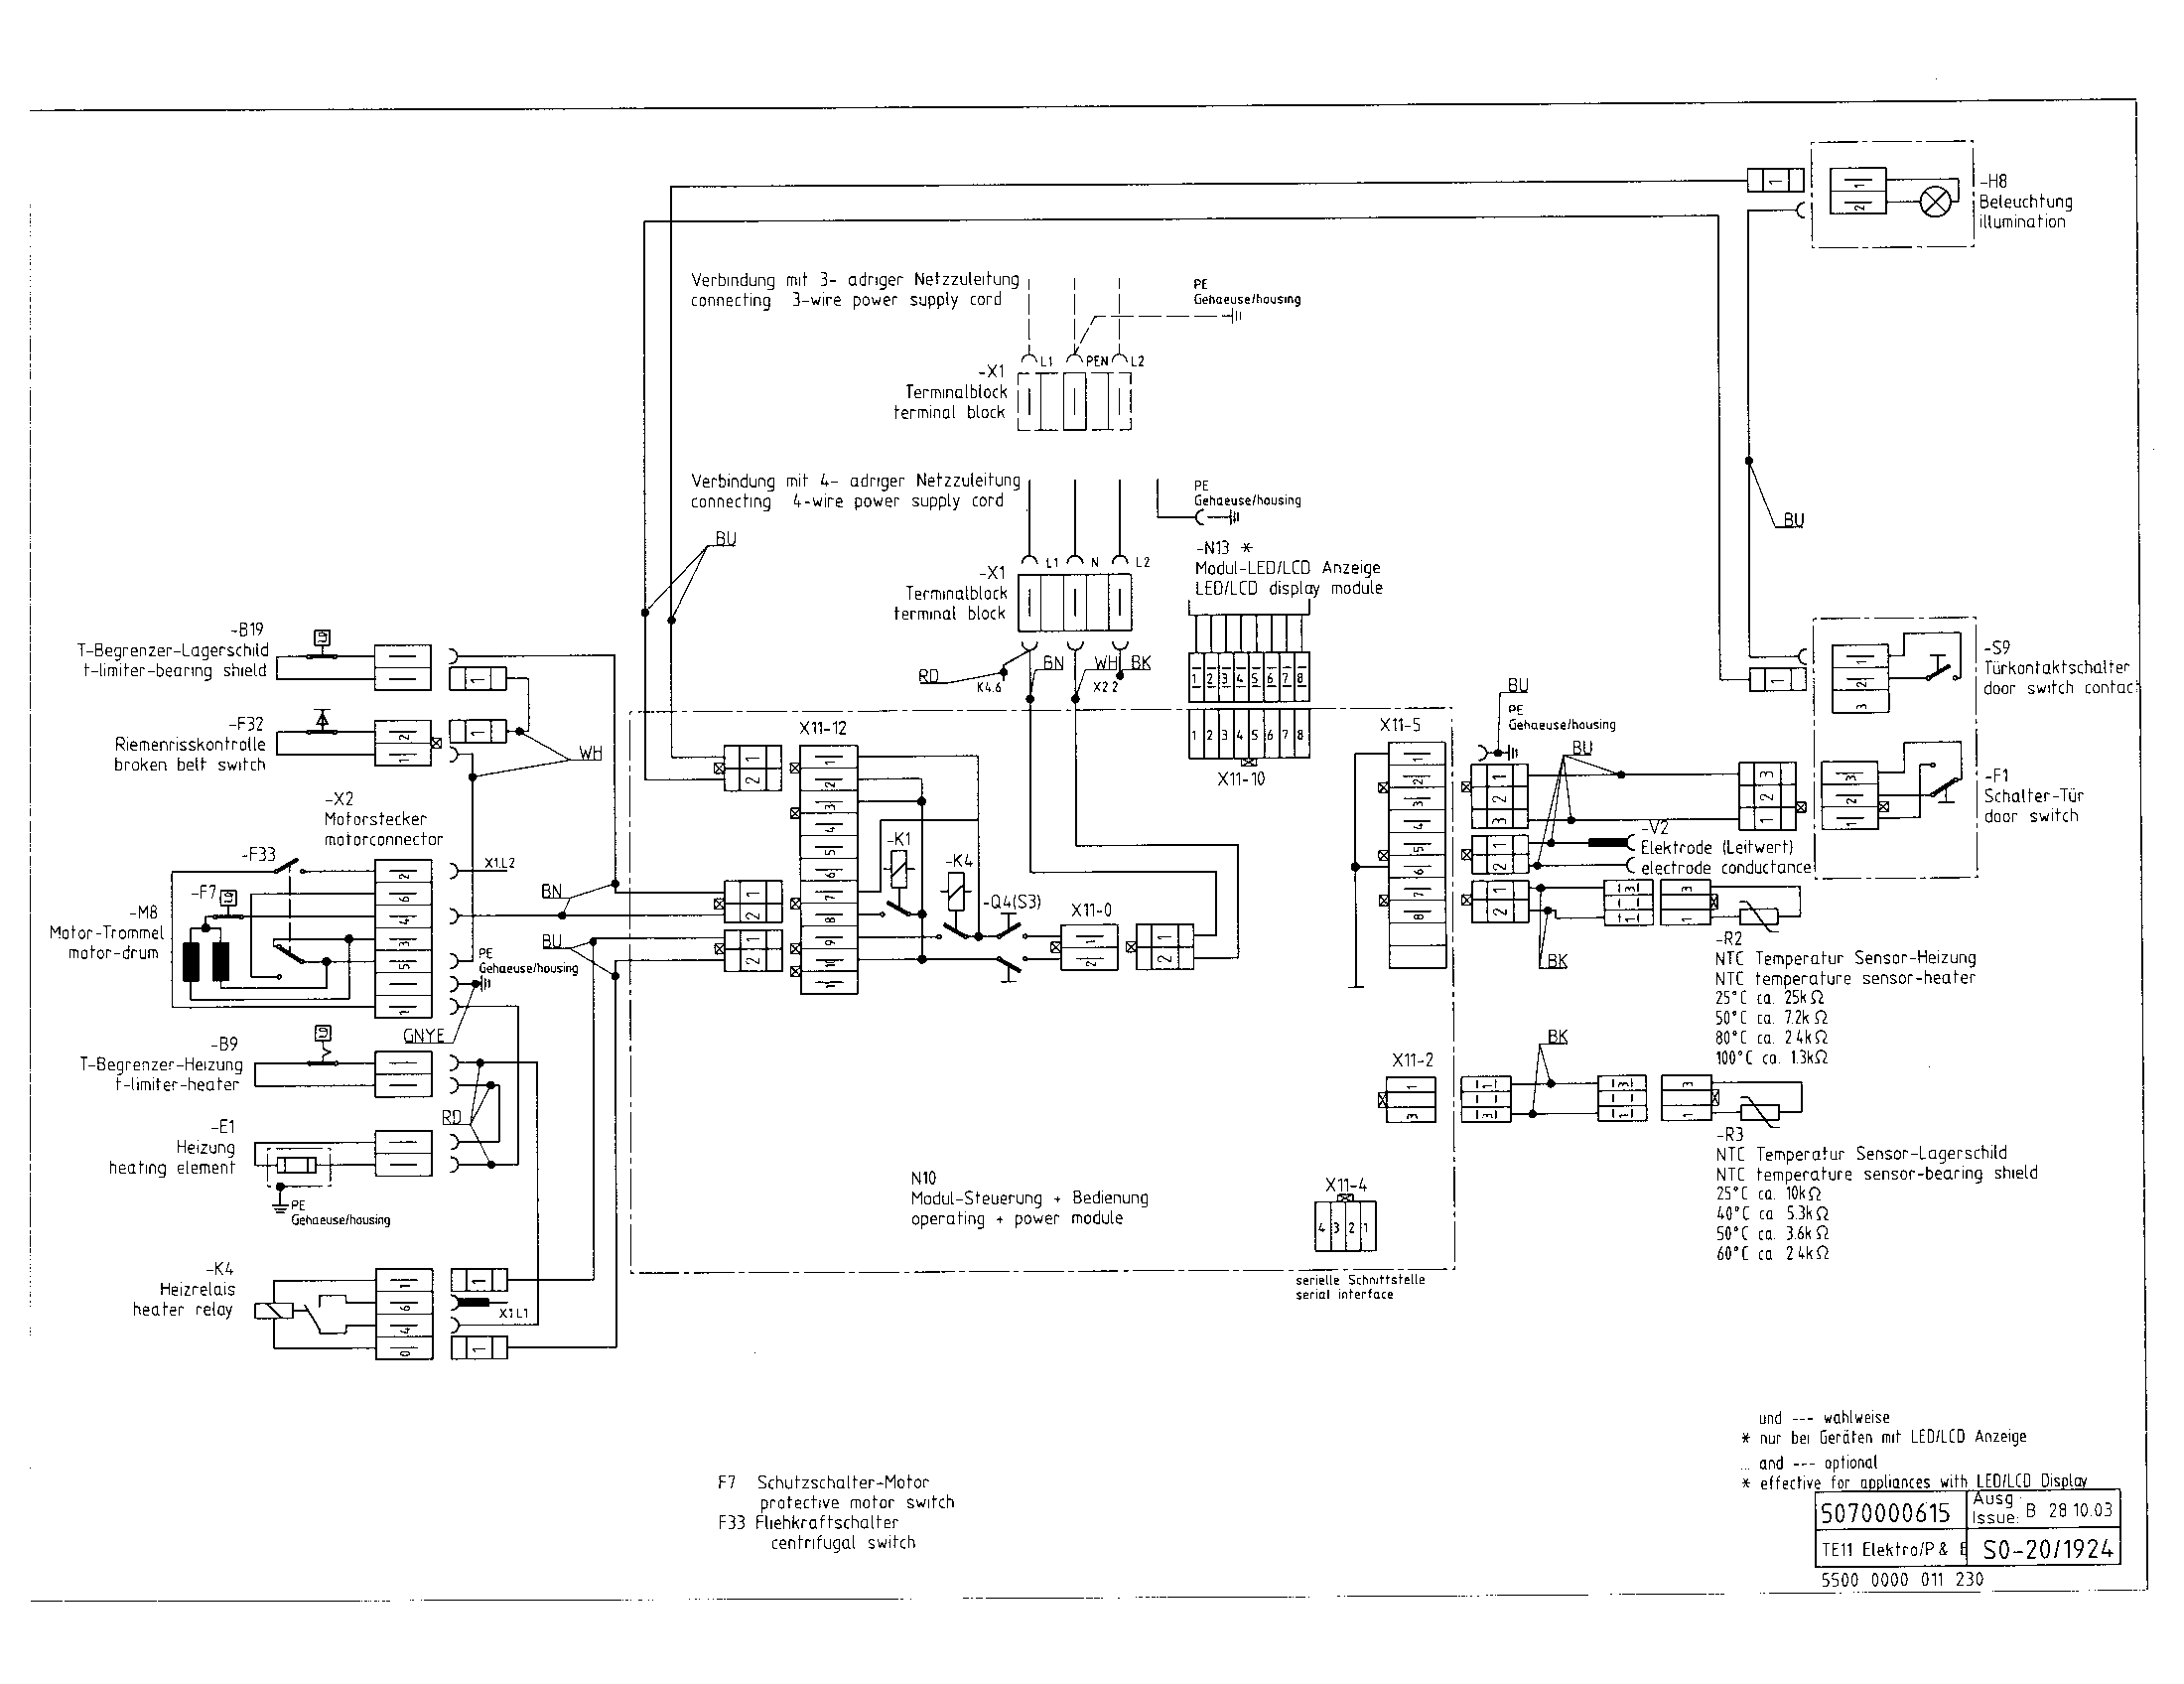 smeg double oven wiring diagram att uverse house overn and schematics